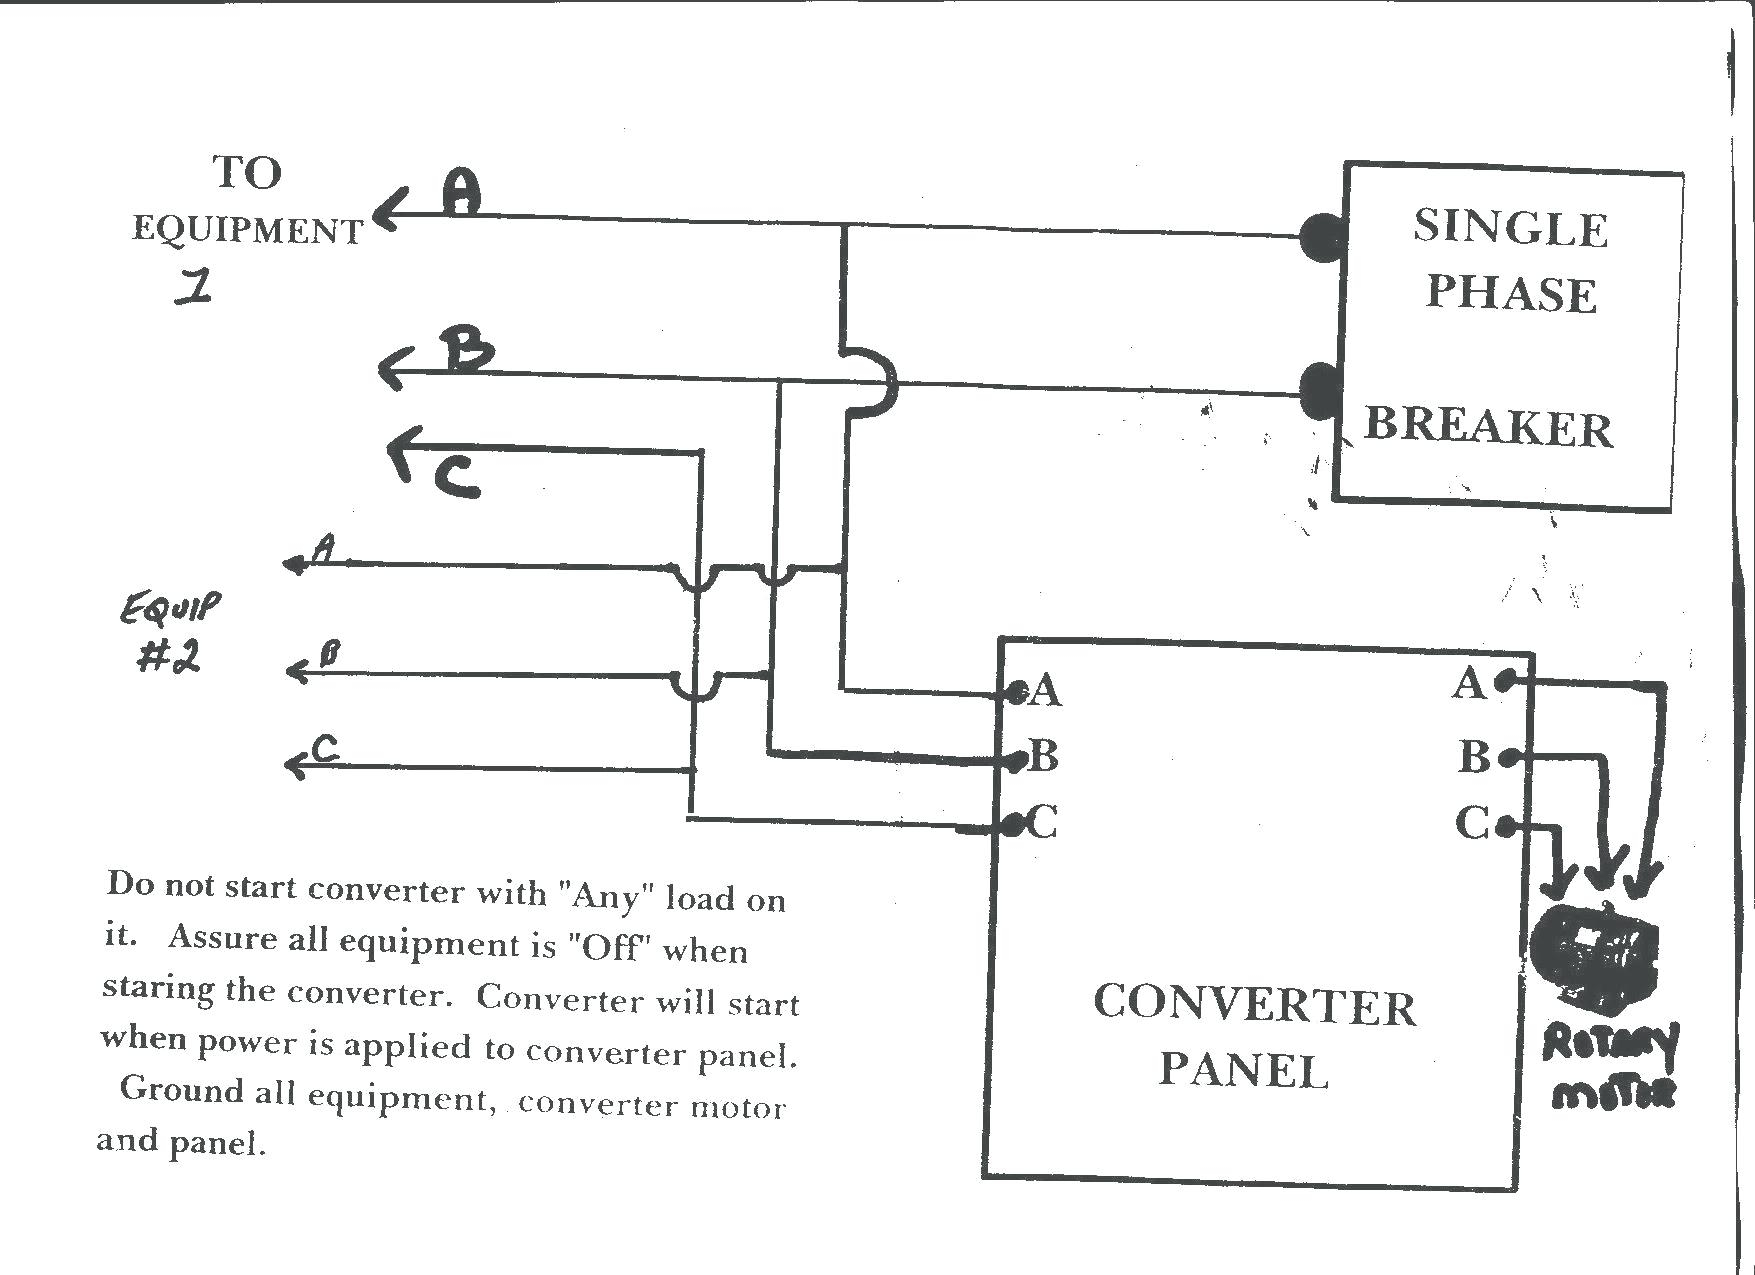 ronk phase converter wiring diagram Download-Ronk Phase Converter Wiring Diagram 4 5-h